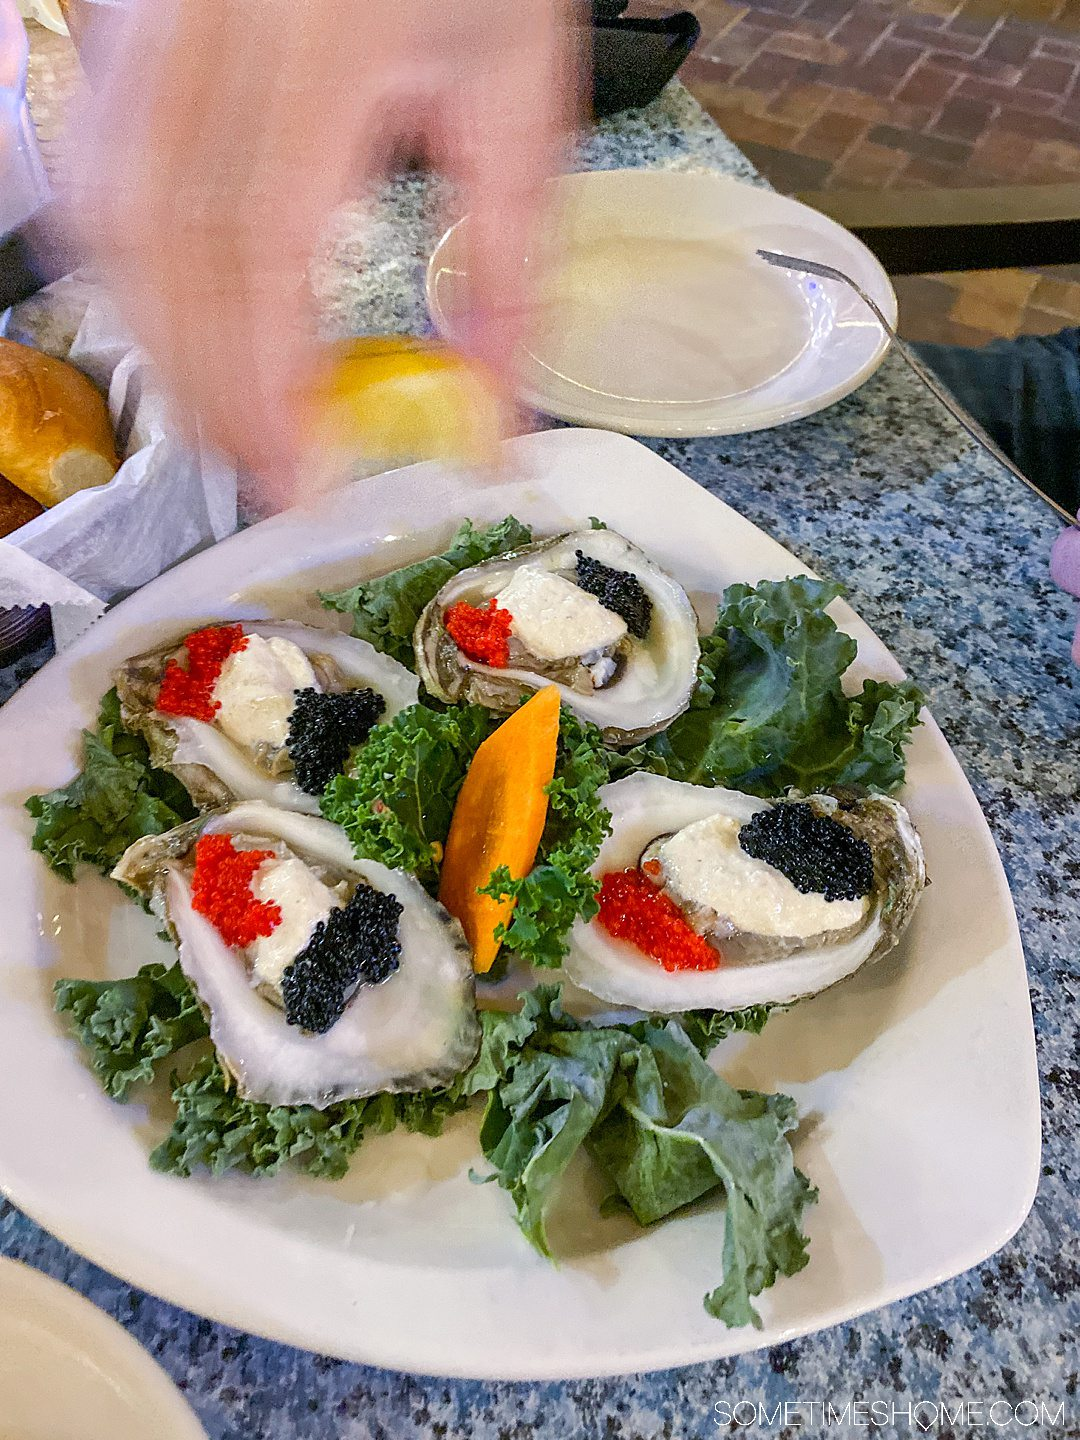 A place of four oysters and a hand in motion squeezing a lemon above the plate.